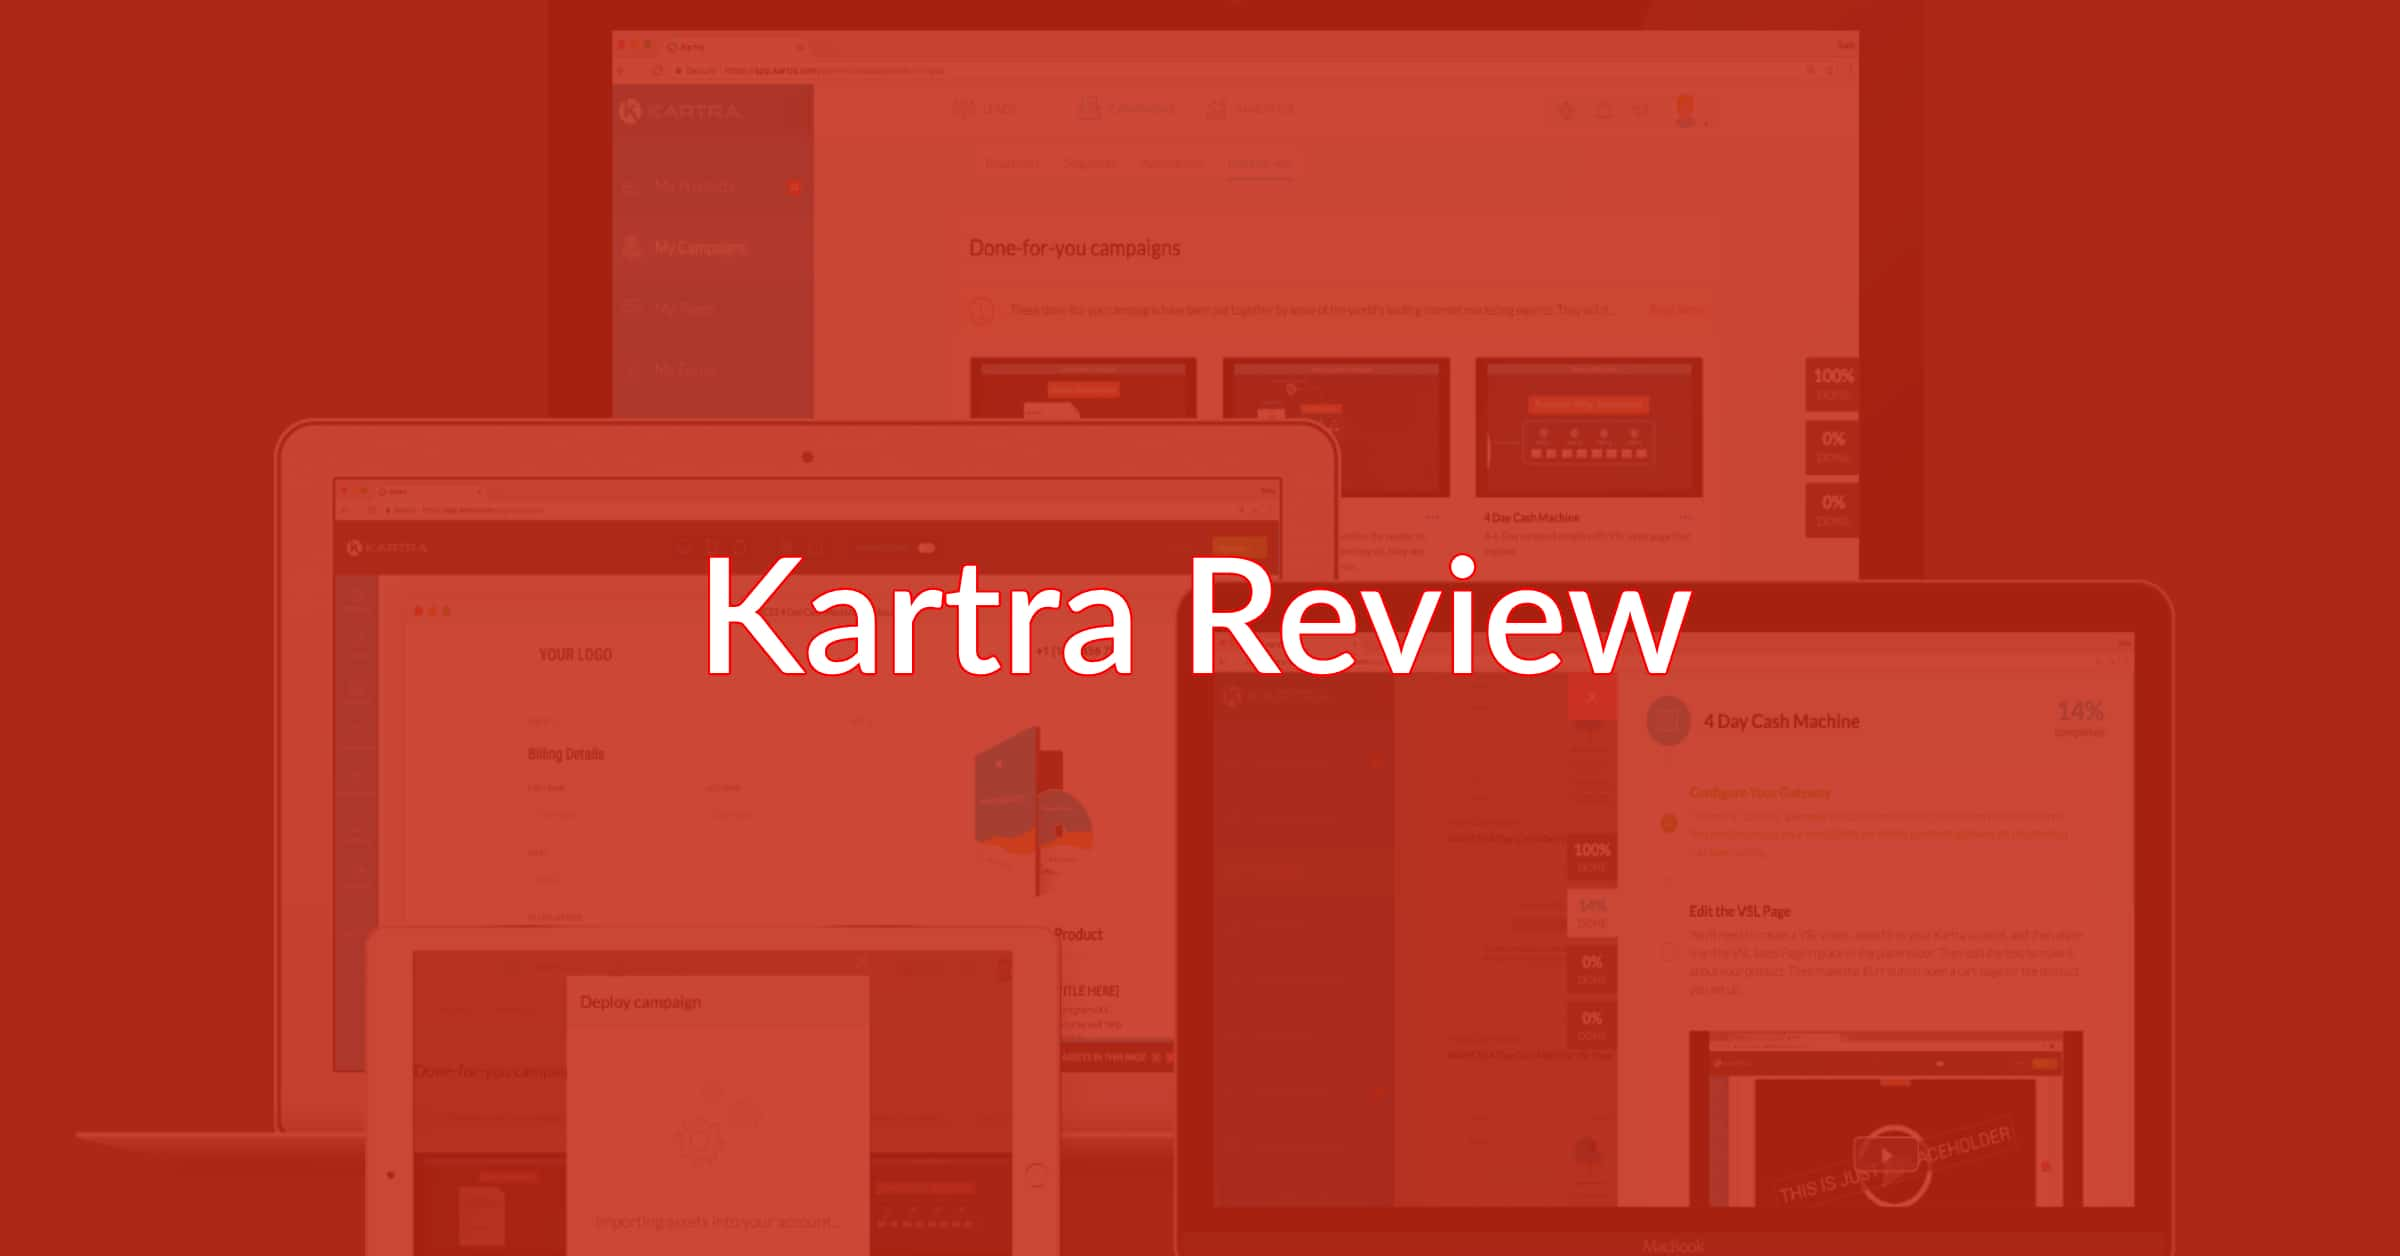 Kartra Review: Still One Of The Best Marketing Platforms?